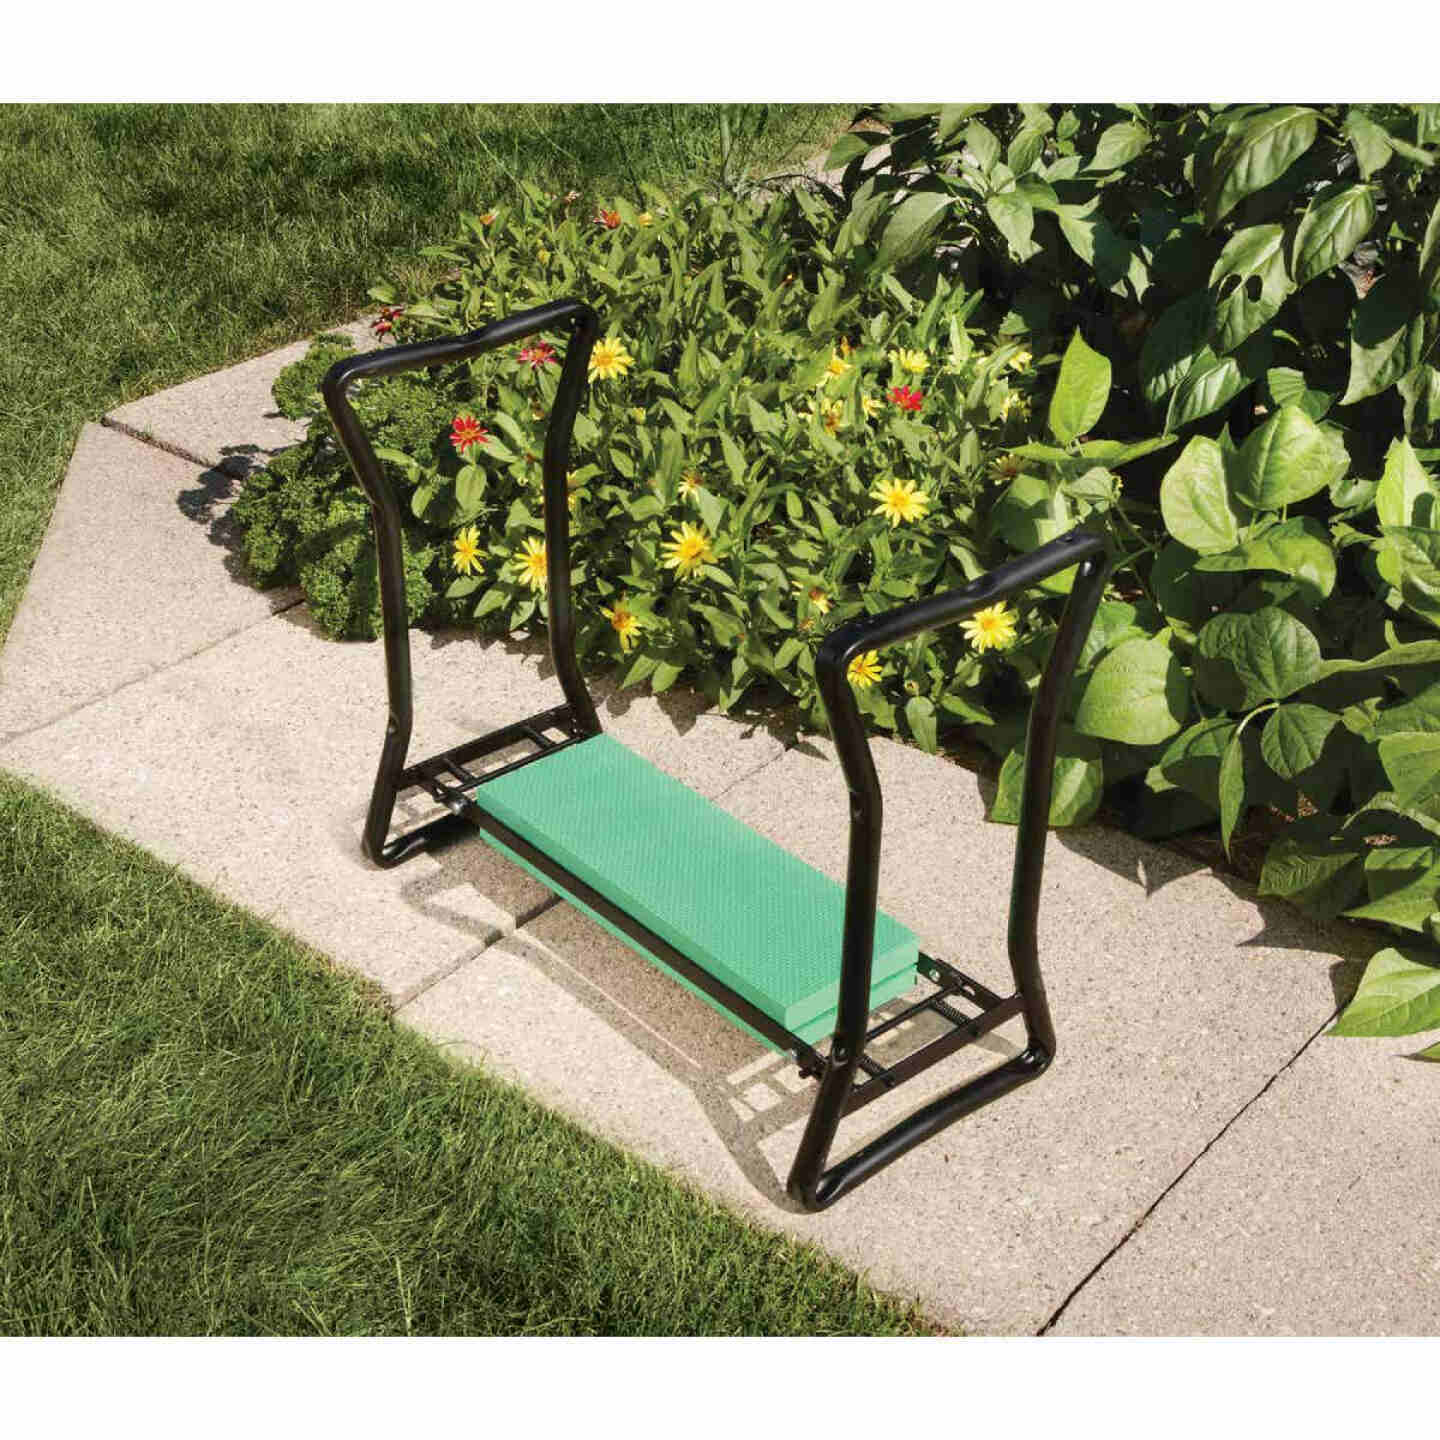 Best Garden Green Foam Pad w/Black Steel Frame Garden Kneeler Bench Image 12